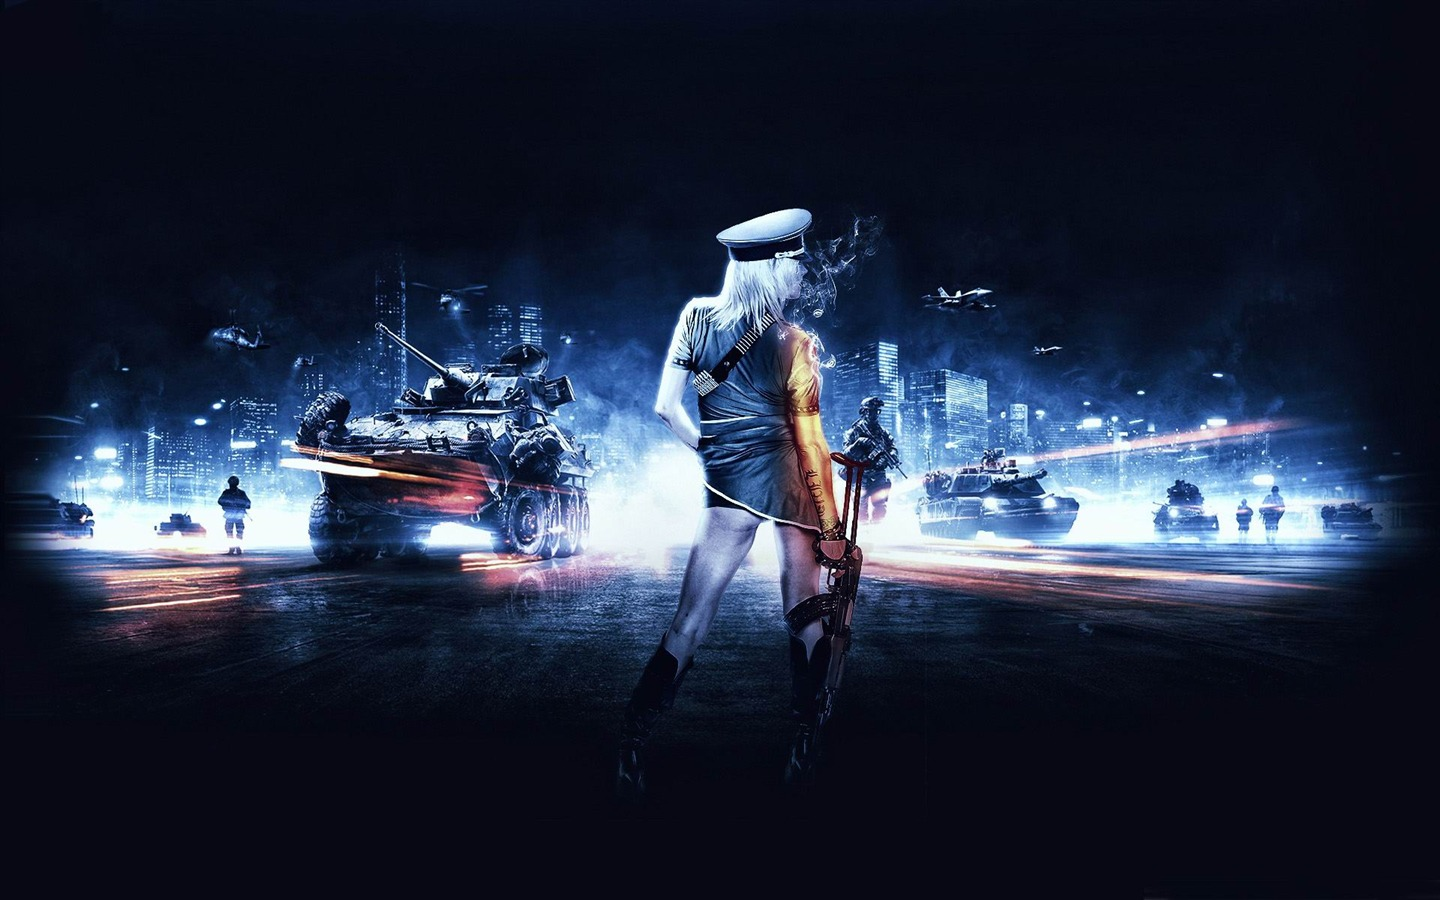 Battlefield 4 Girl Wallpaper Battlefield 3 Girl Games Hd Wallpaper Preview